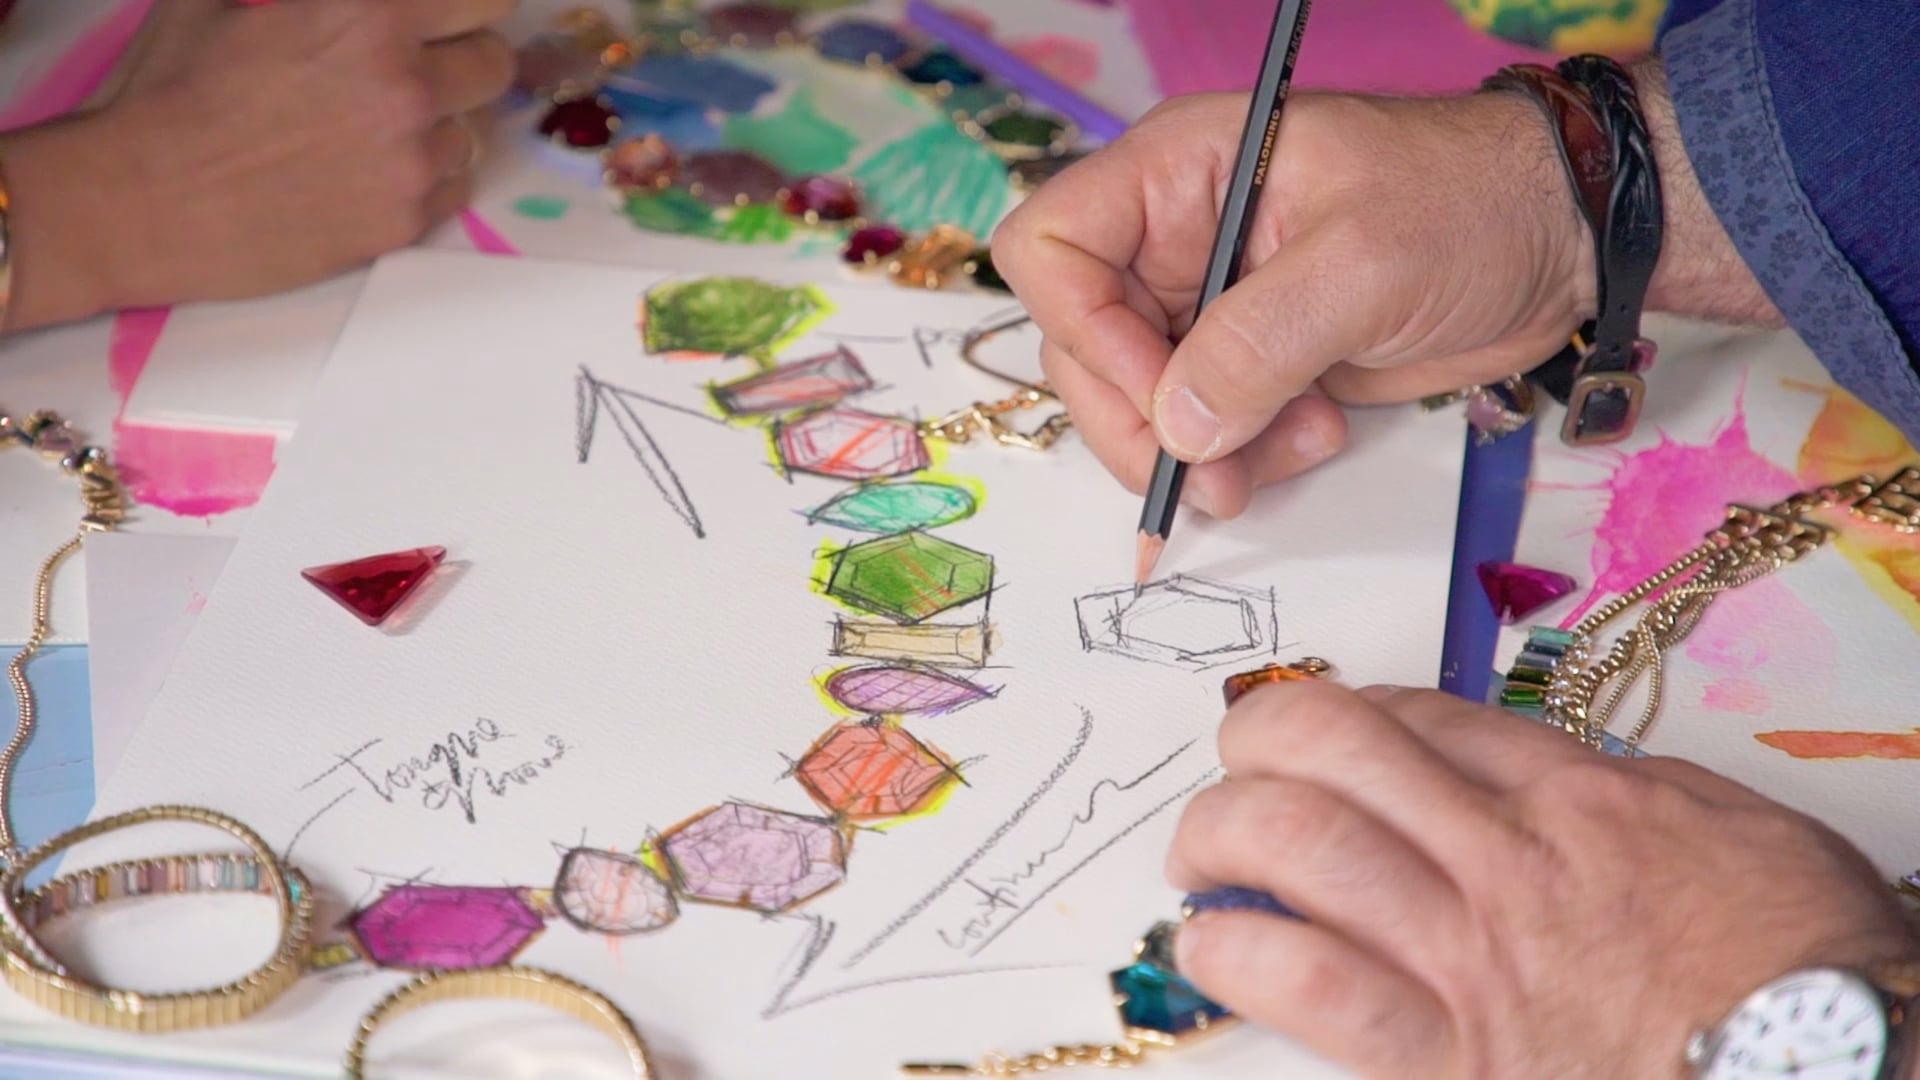 Behind The Design with Blythe and Tawfik